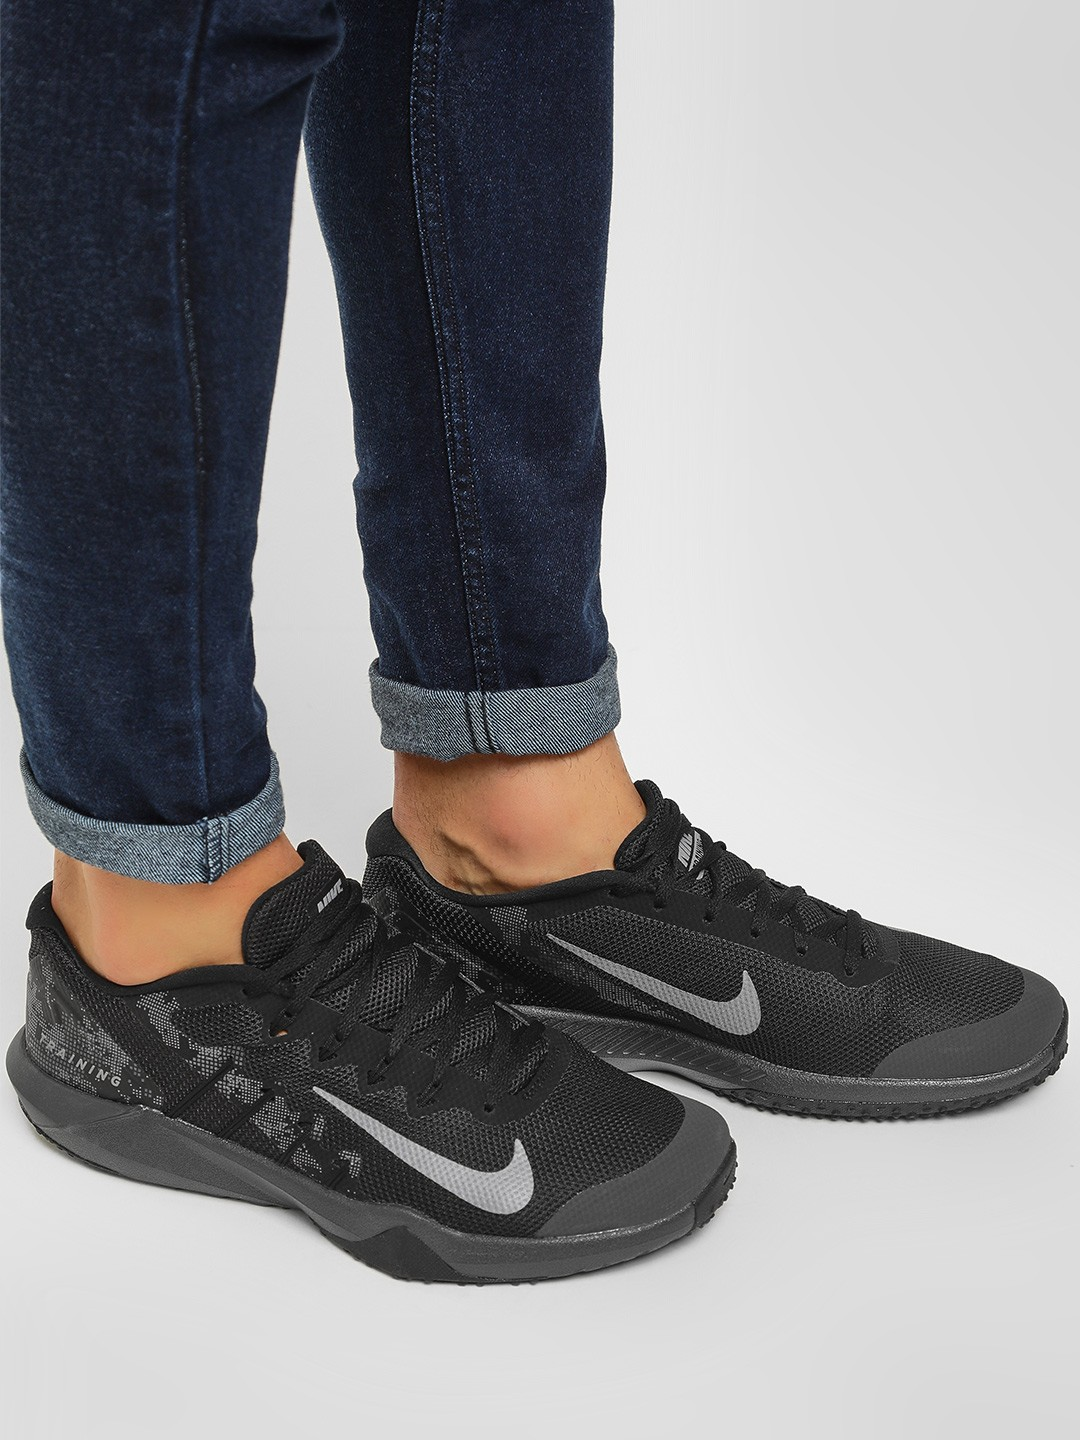 Nike Black Training Retaliation 2 Trainers 1